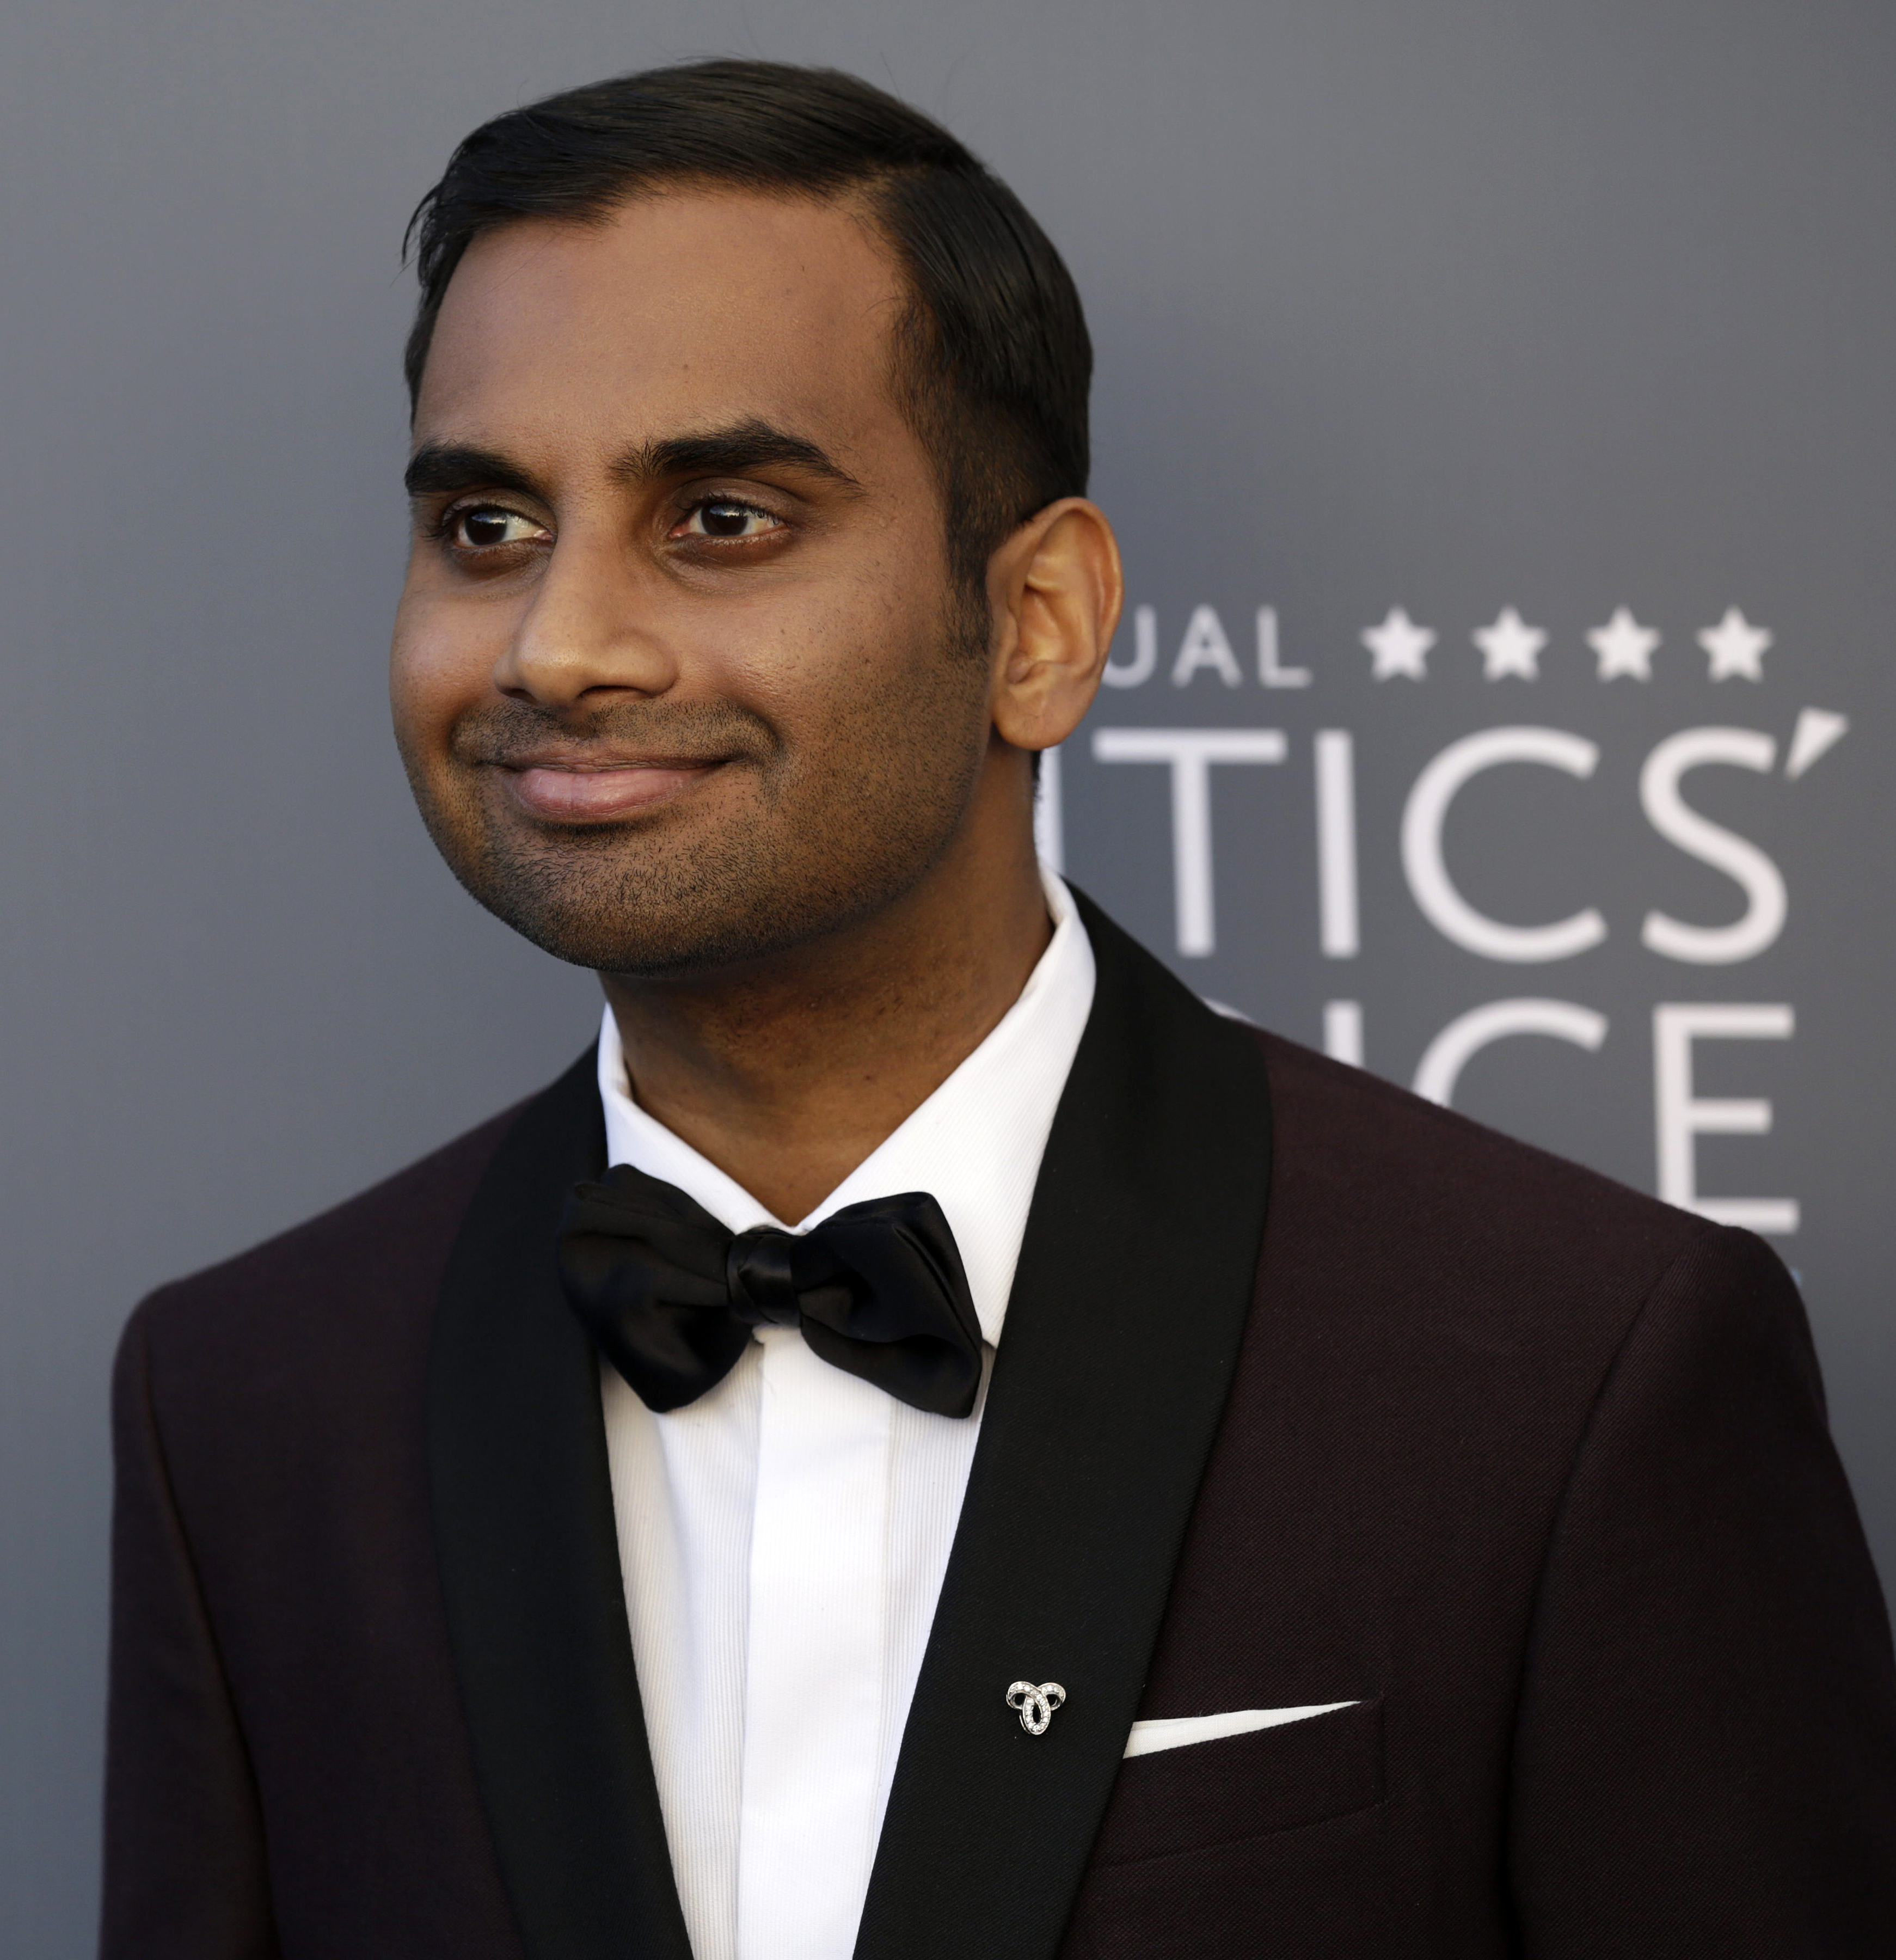 Aziz Ansari responds to sexual misconduct allegations